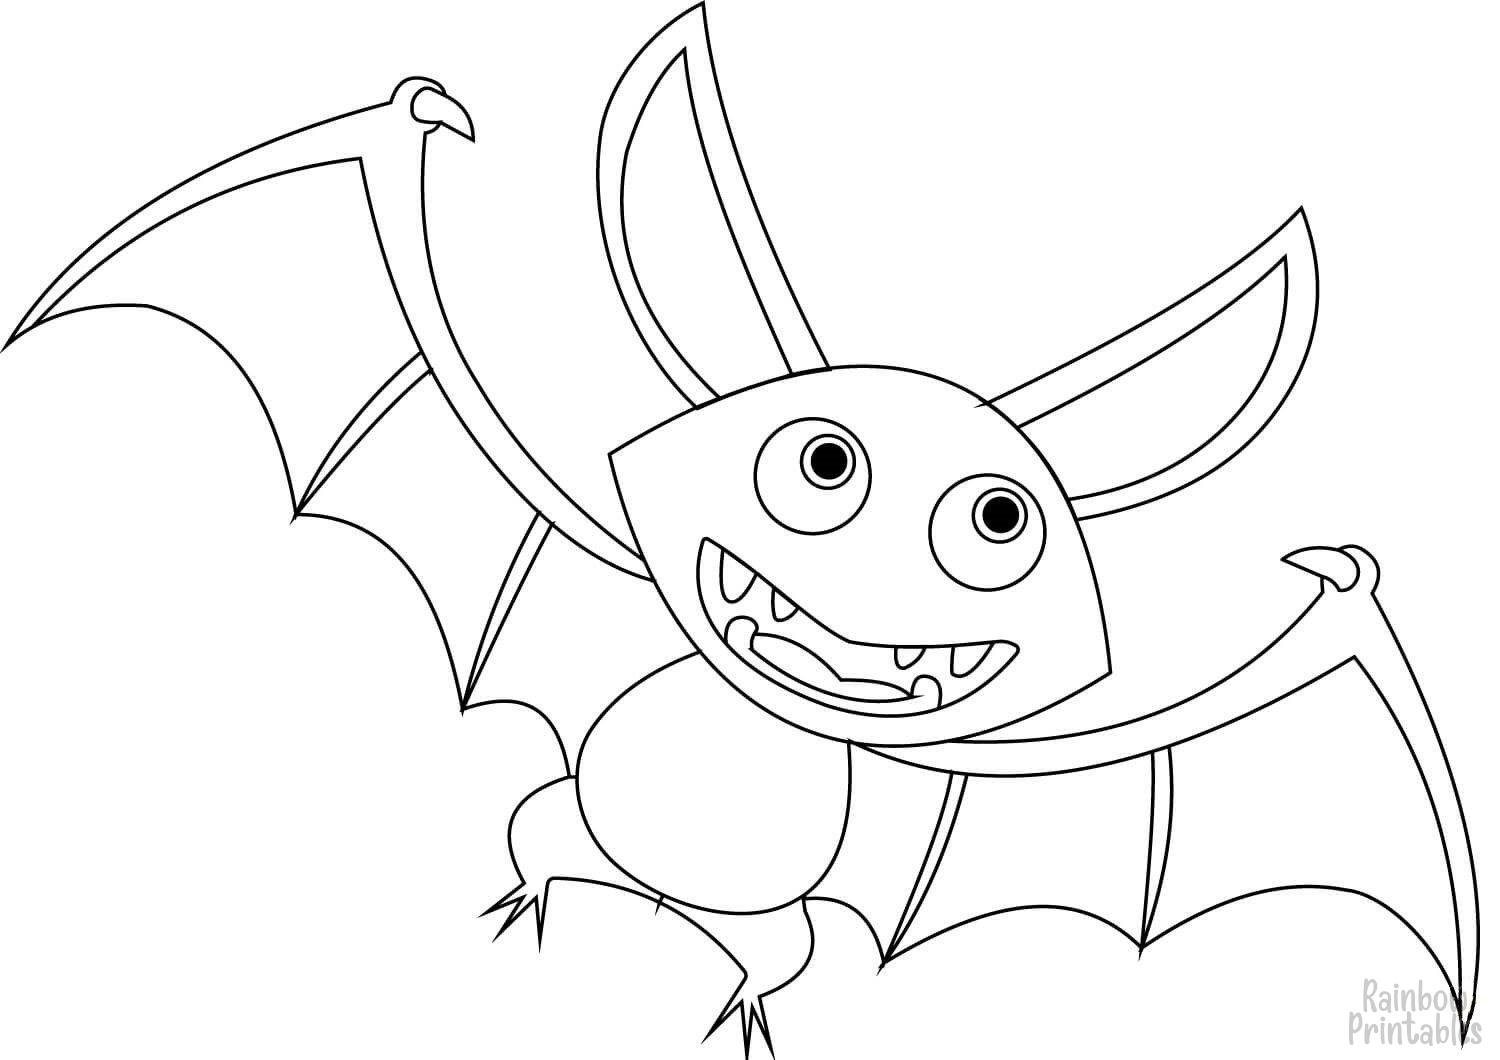 Simple Easy Color Animal Pages for Kids Cute playing bat coloring page